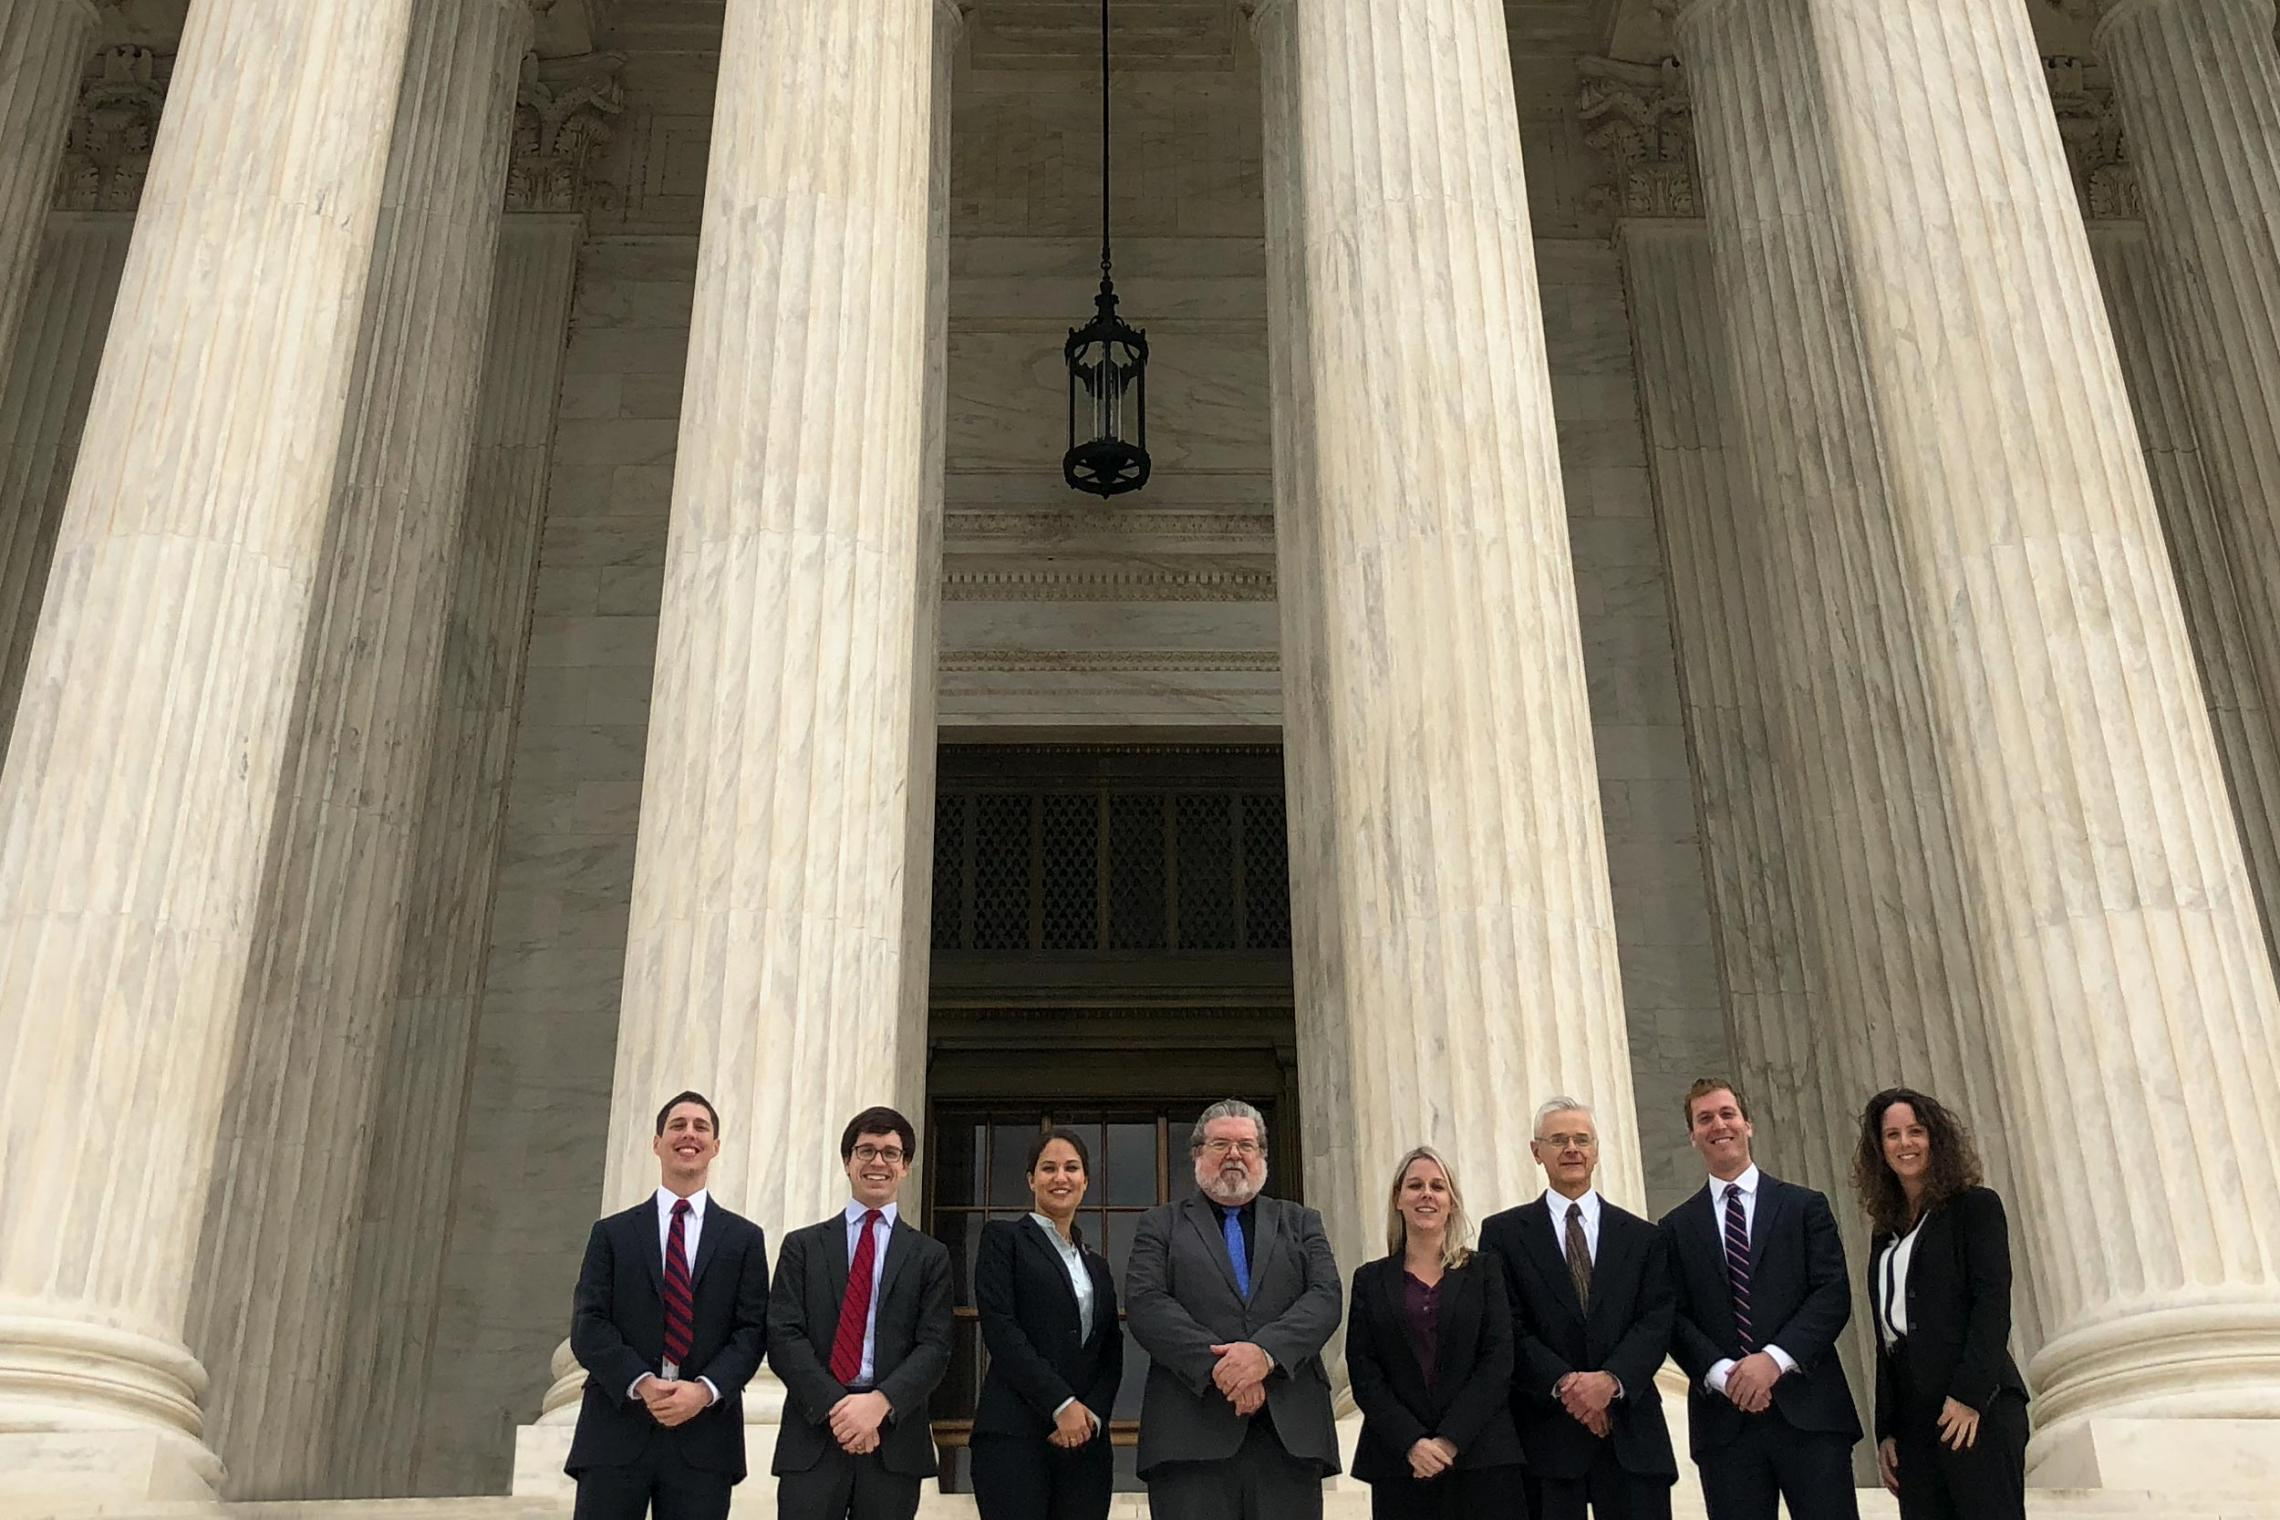 Members of UVA Law's Supreme Court Litigation Clinic pose for a photo outside the U.S. Supreme Court.